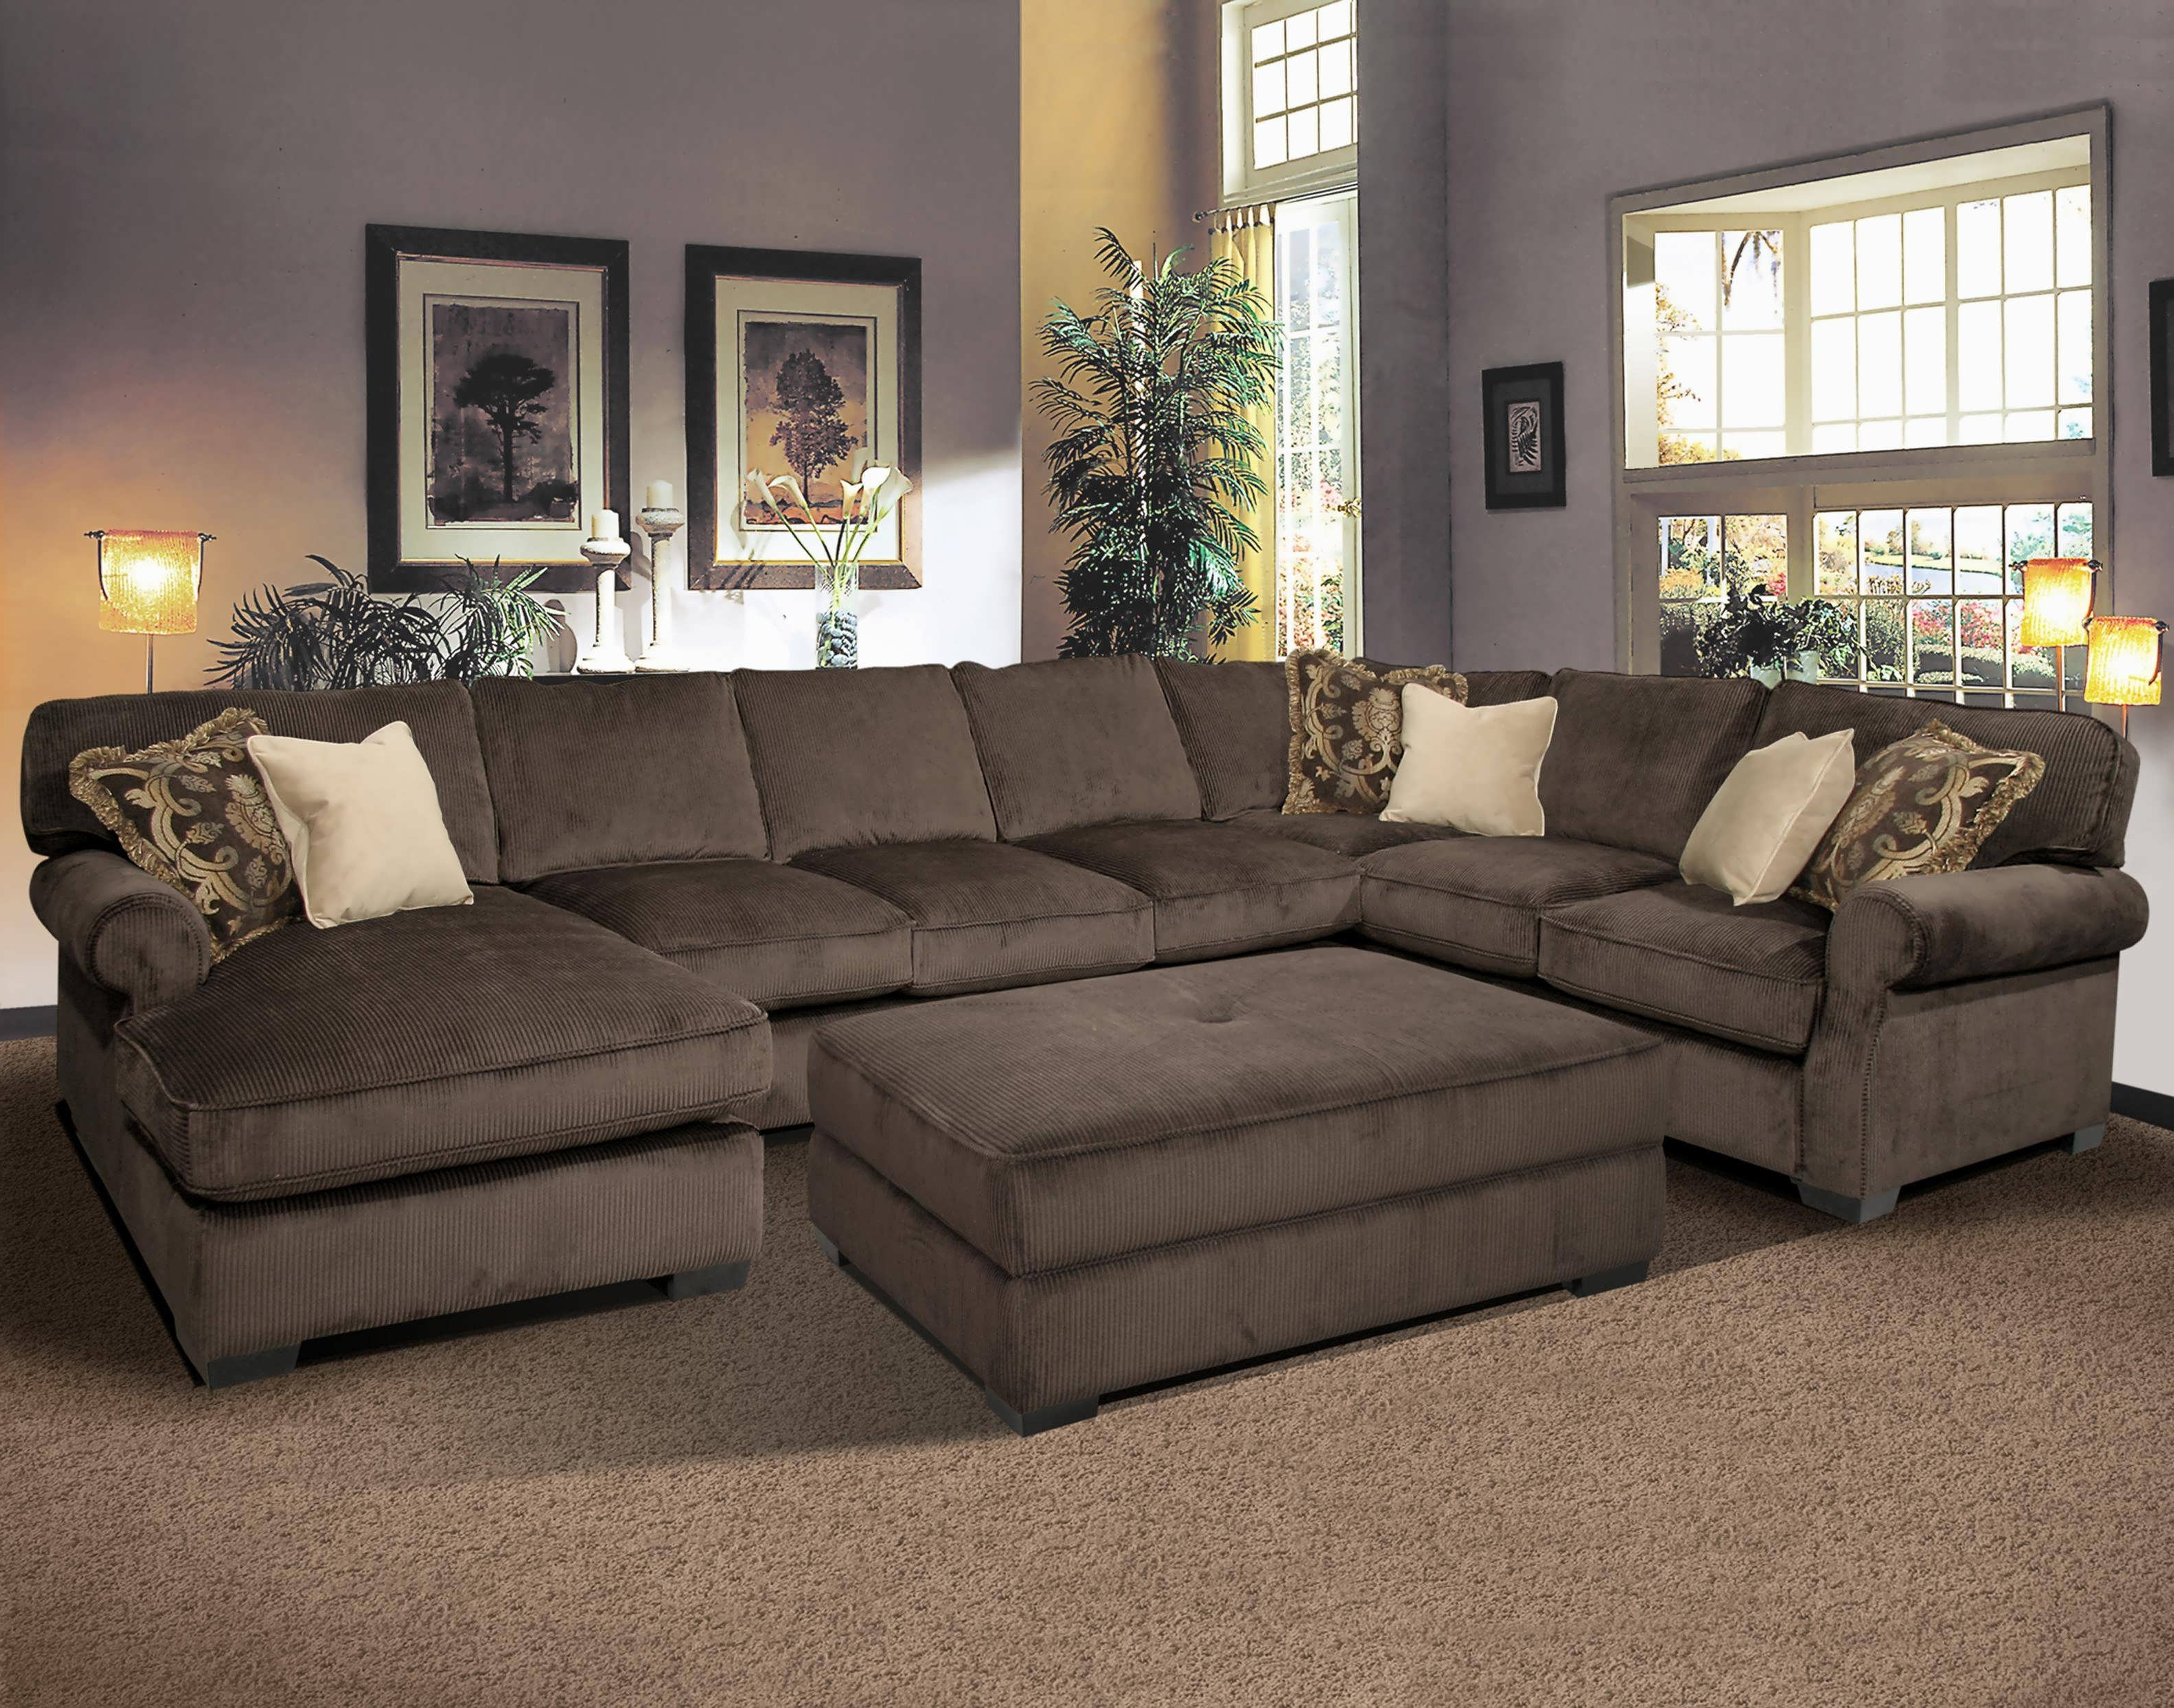 Sleeper Sofa Sectionals With Chaise Throughout Most Current Sofa : Leather Reclining Sectional 4 Piece Sectional Sofa (View 12 of 15)